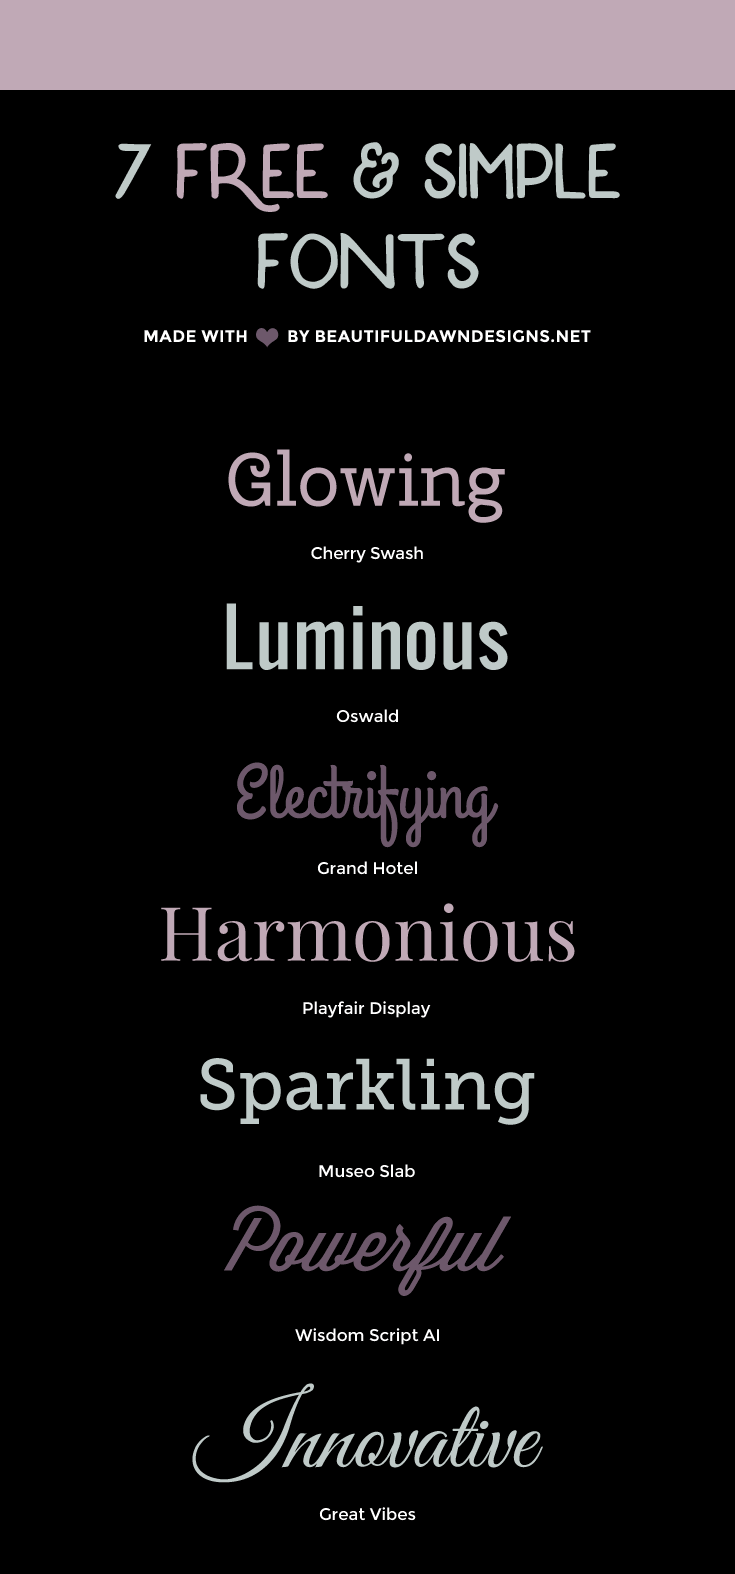 A roundup of 7 simple and free fonts.